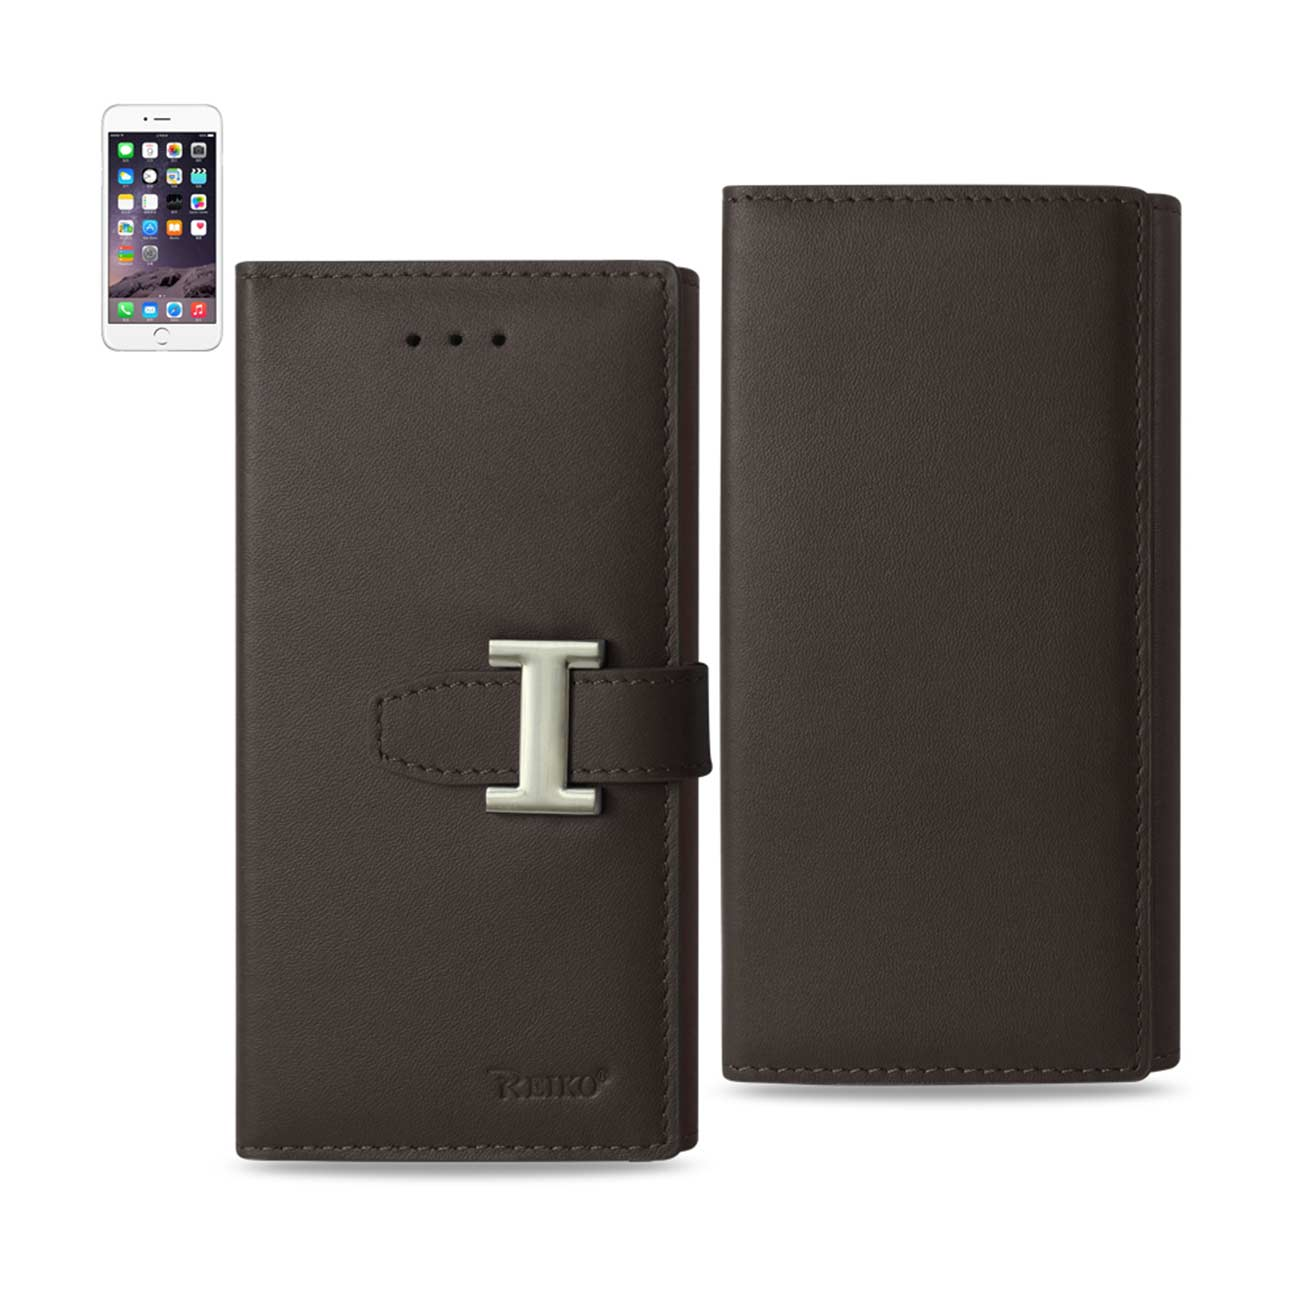 IPHONE 6 PLUS GENUINE LEATHER RFID WALLET CASE IN UMBER